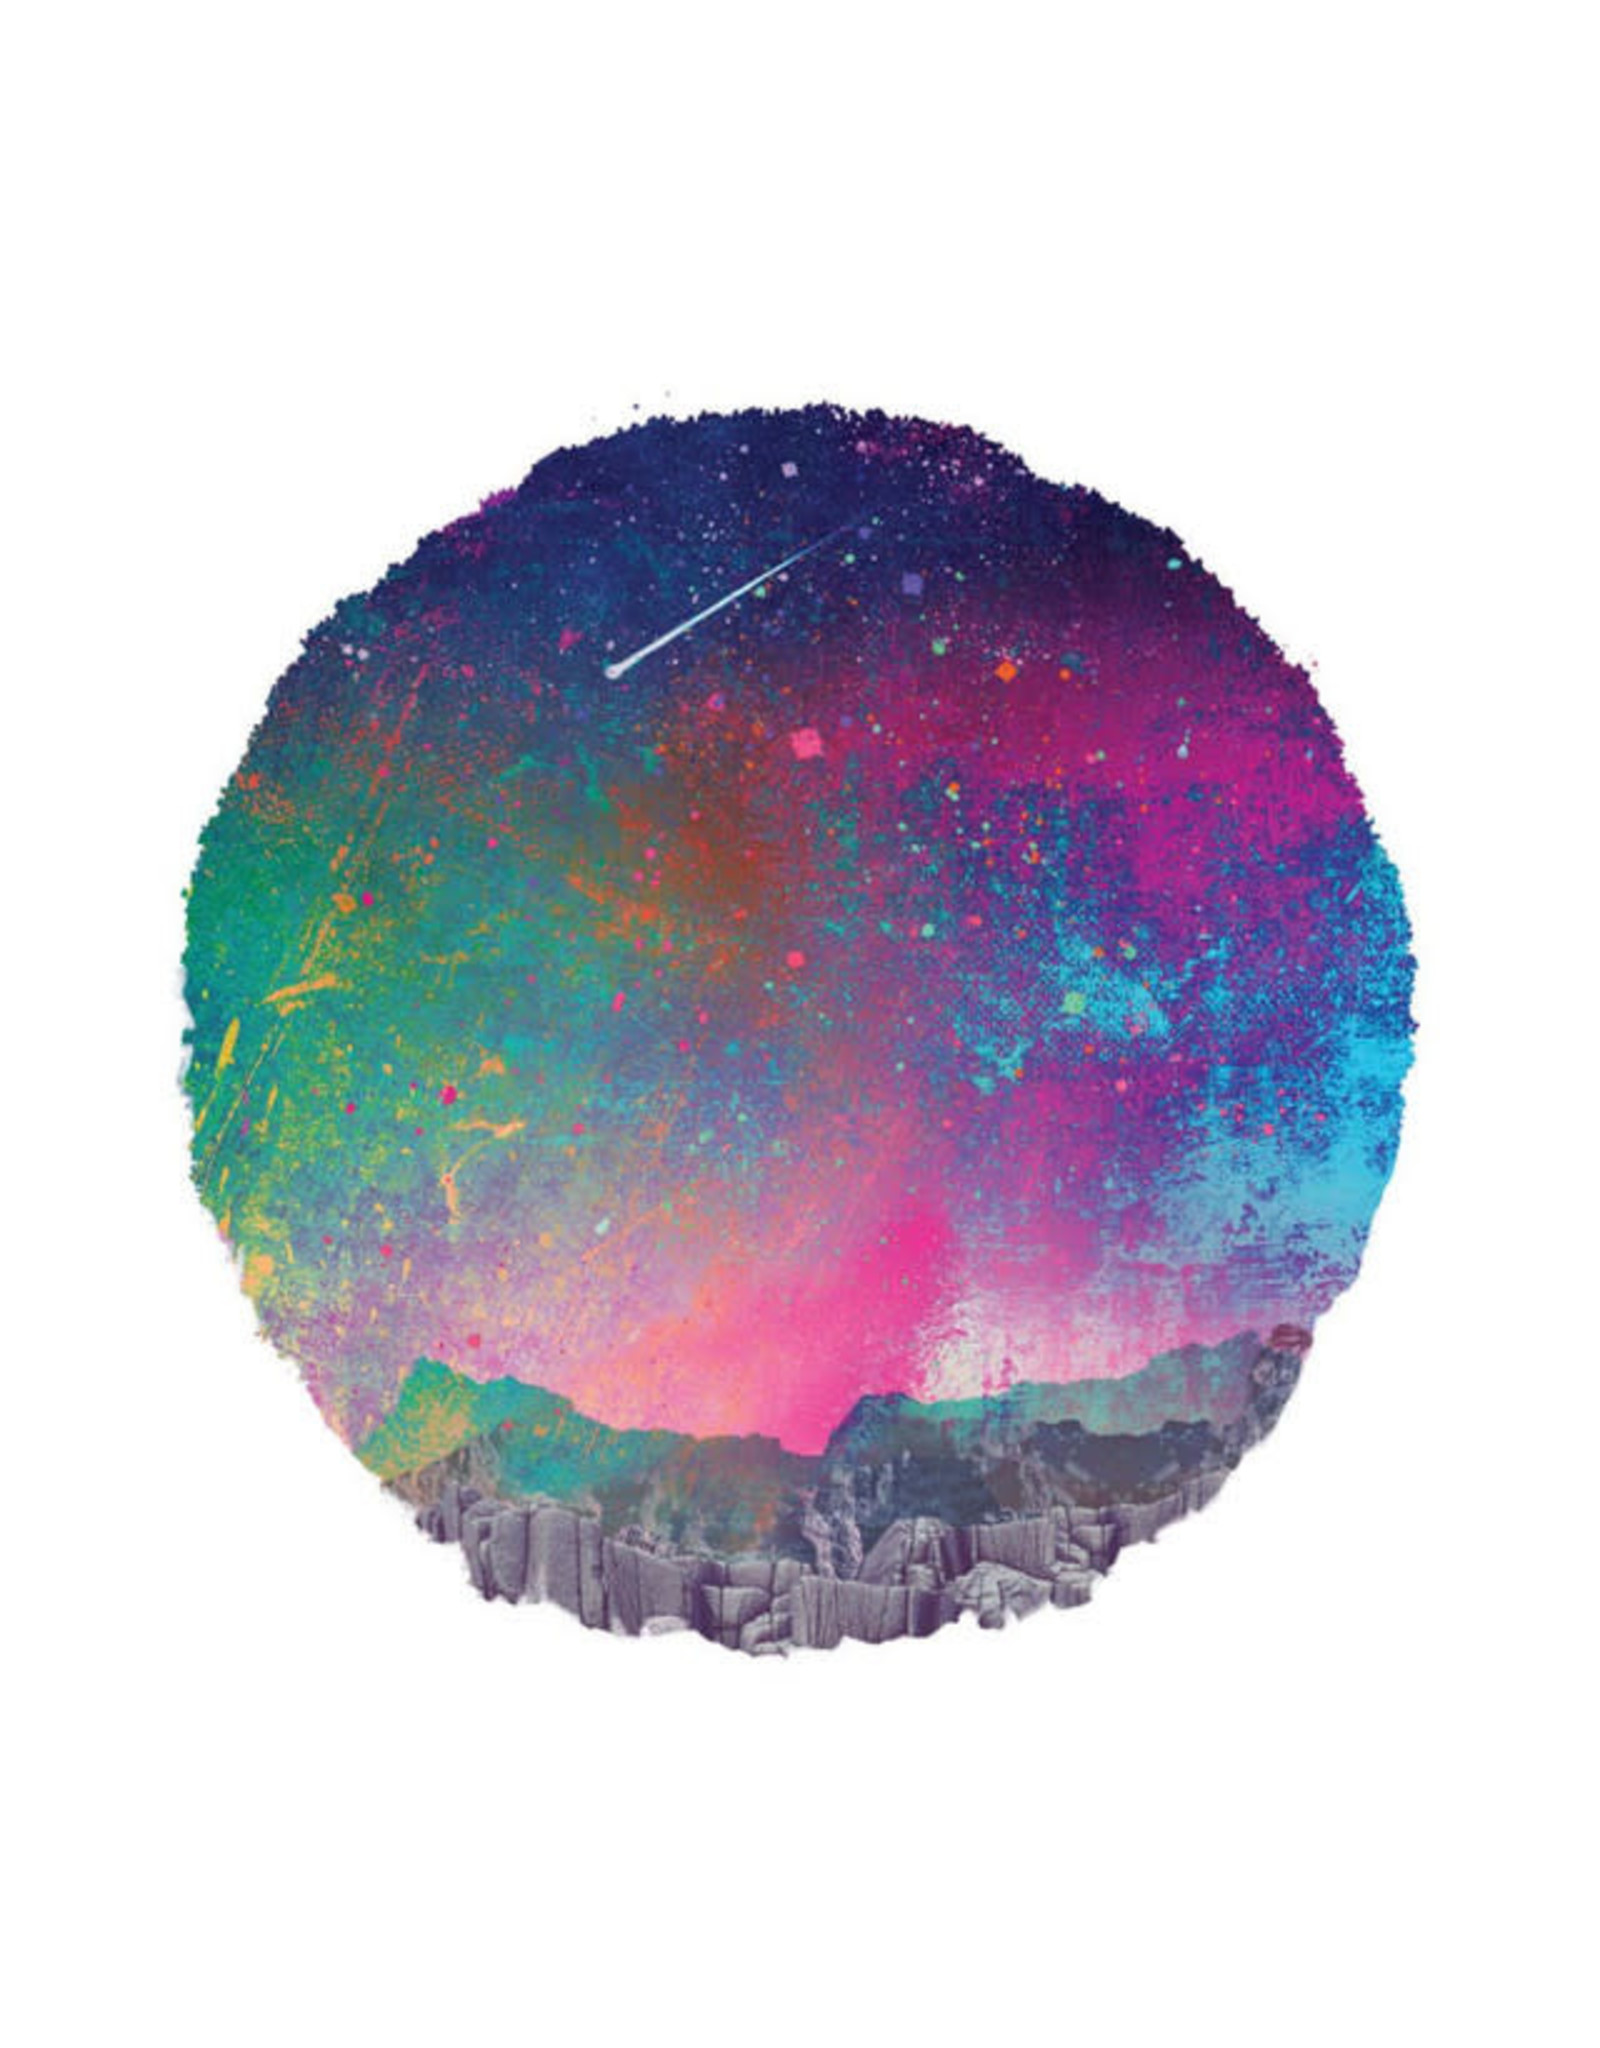 Vinyl Khruangbin - The Universe Smiles Upon You